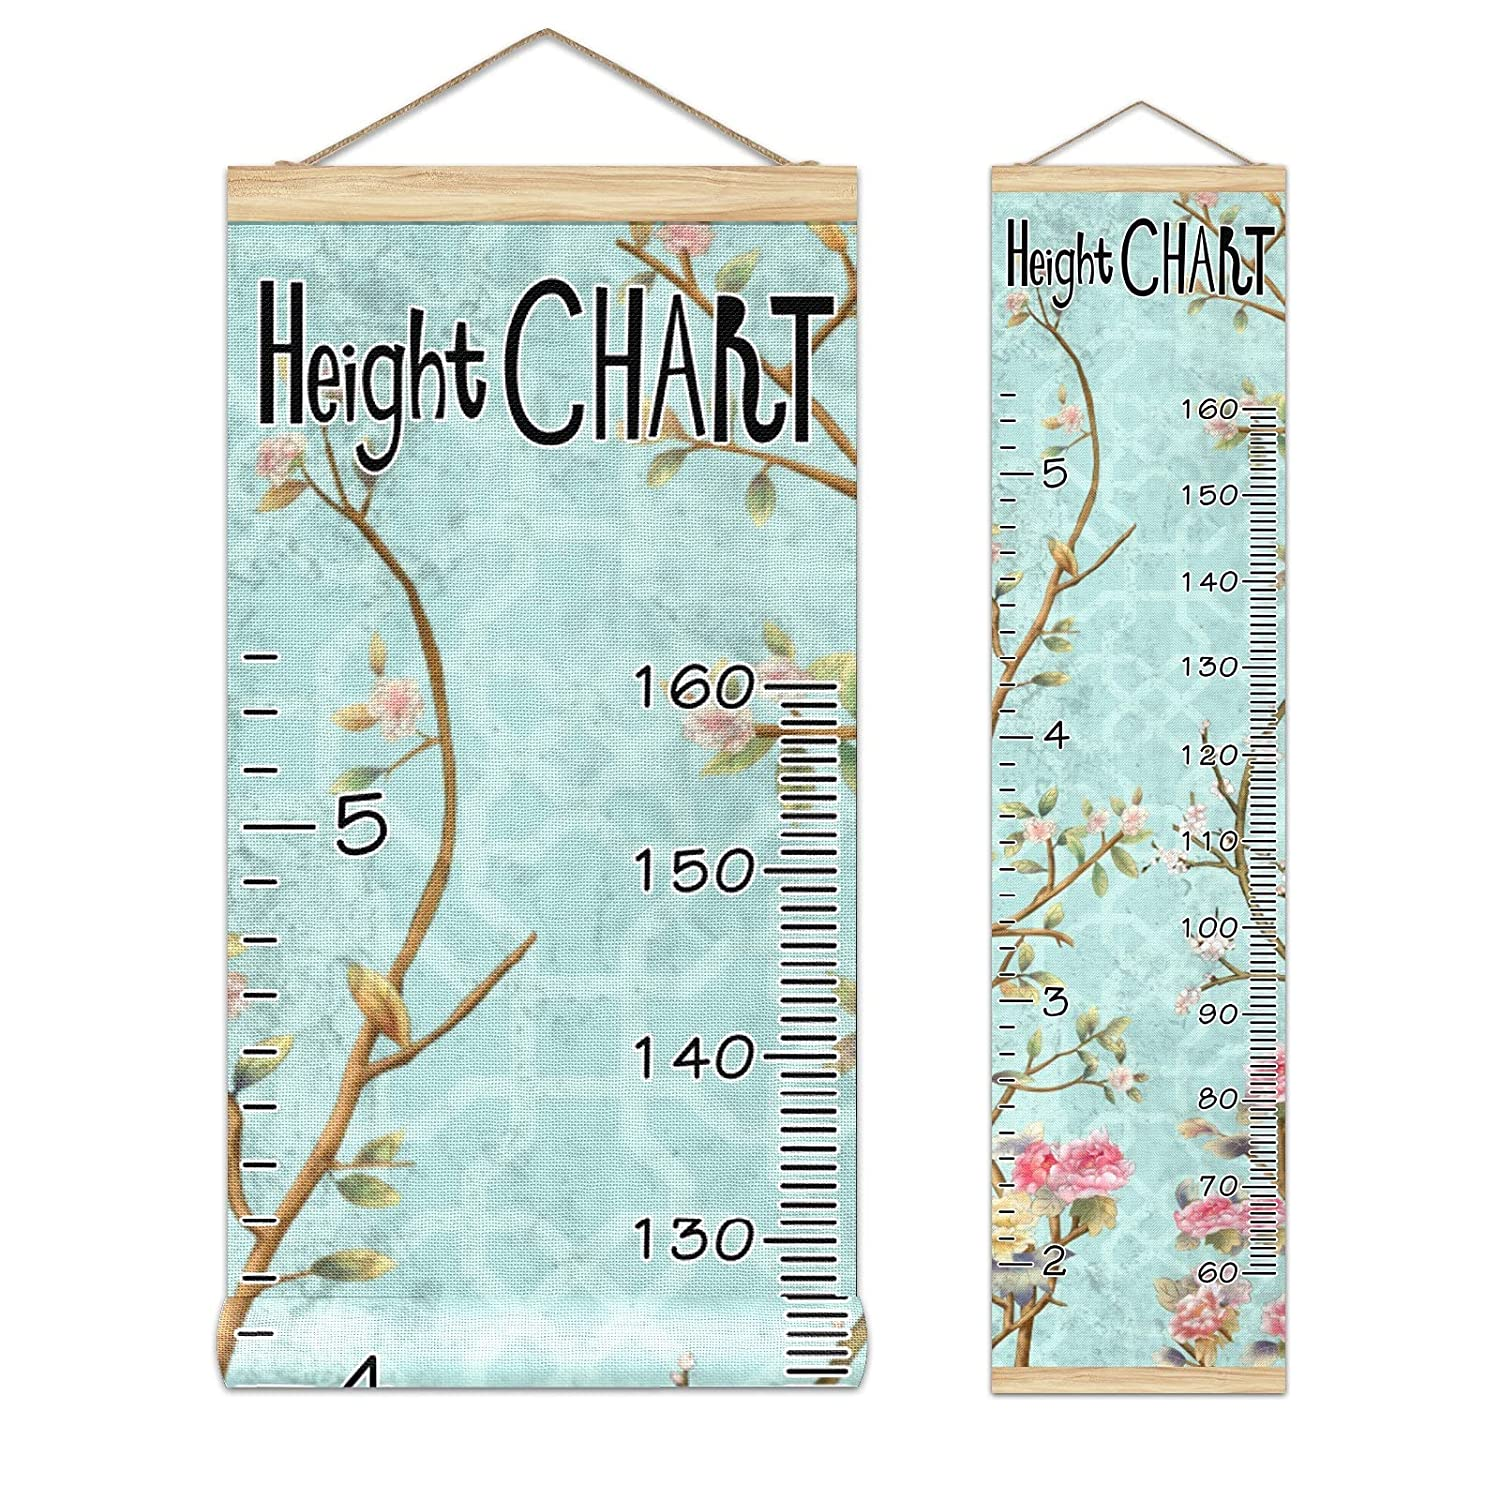 Ranking integrated 1st place Kids Growth Chart Ruler for Measure Wood Height Frame Wall OFFicial store